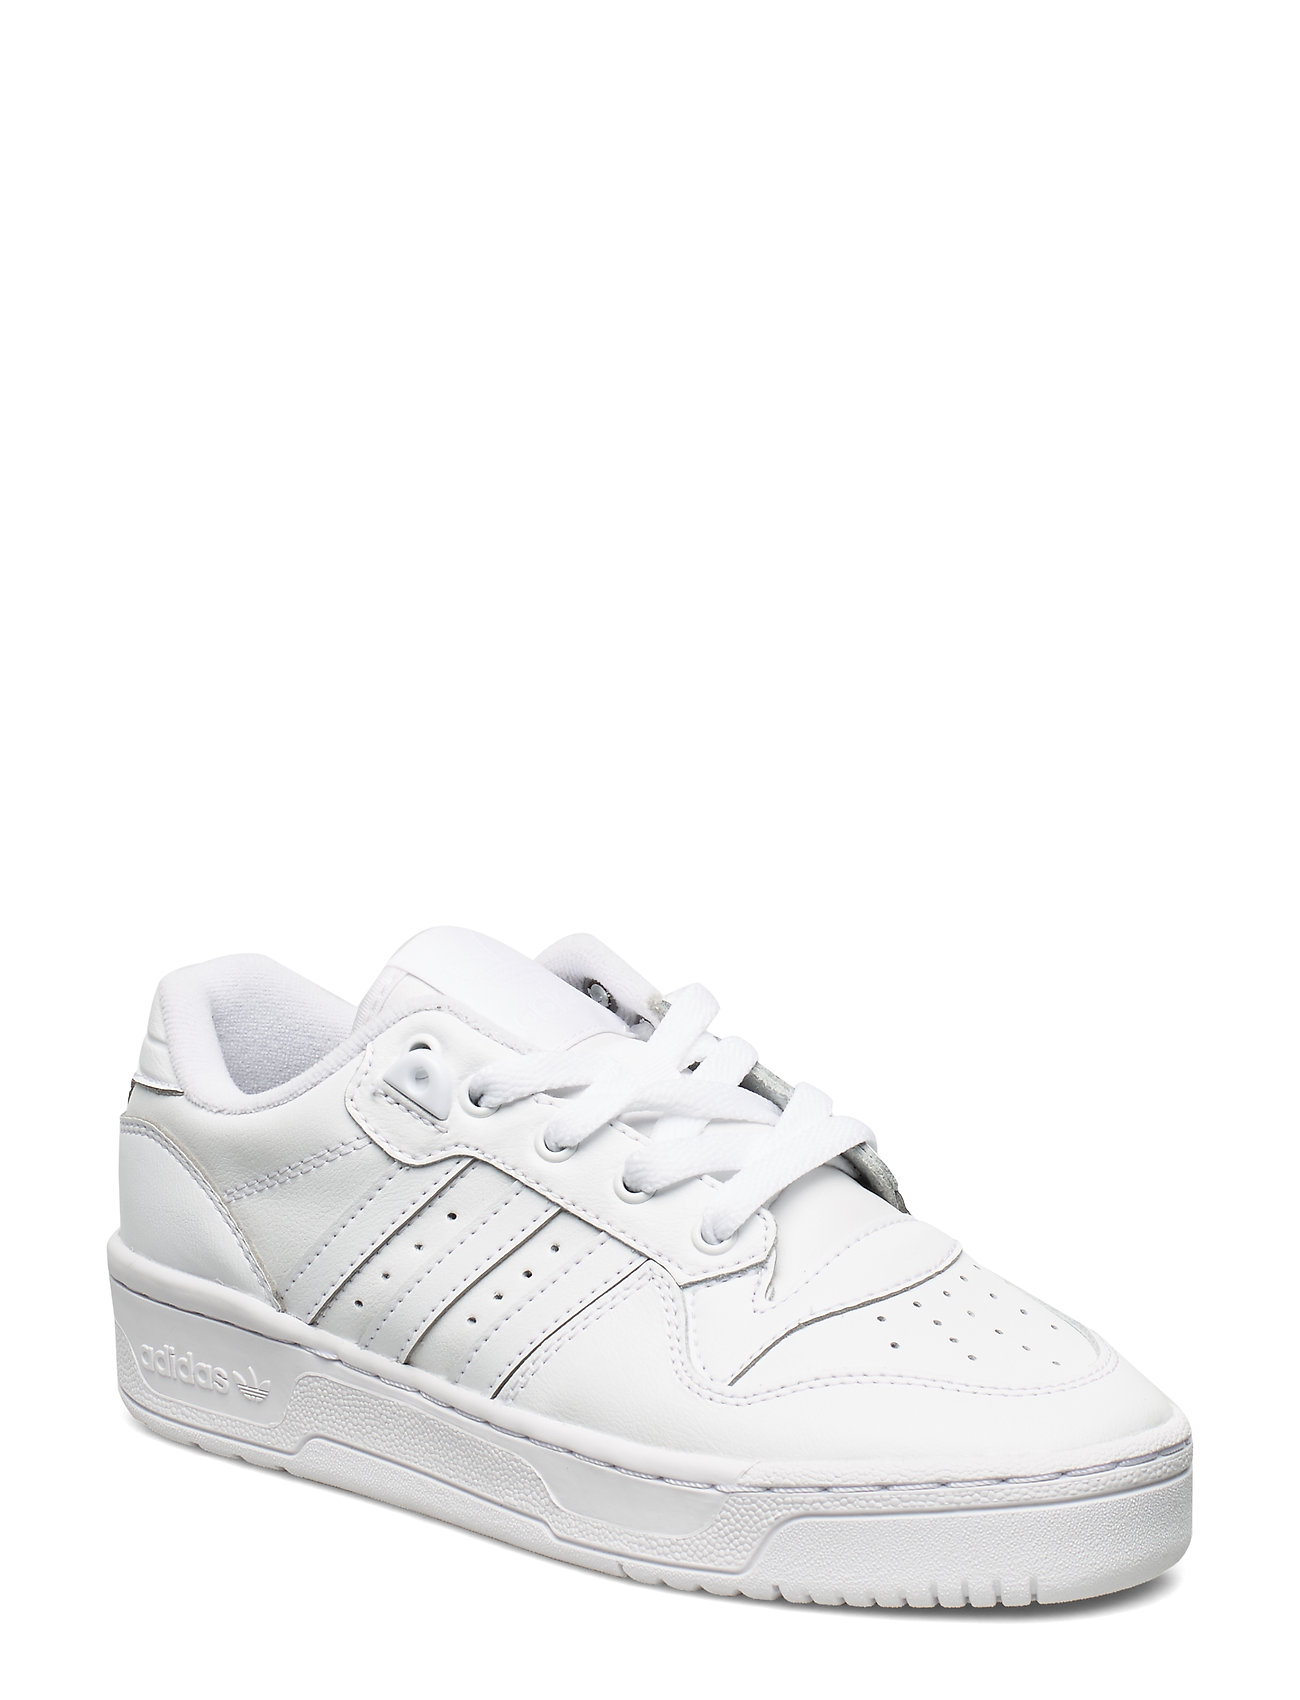 adidas Originals RIVALRY LOW J - FTWWHT/FTWWHT/CBLACK